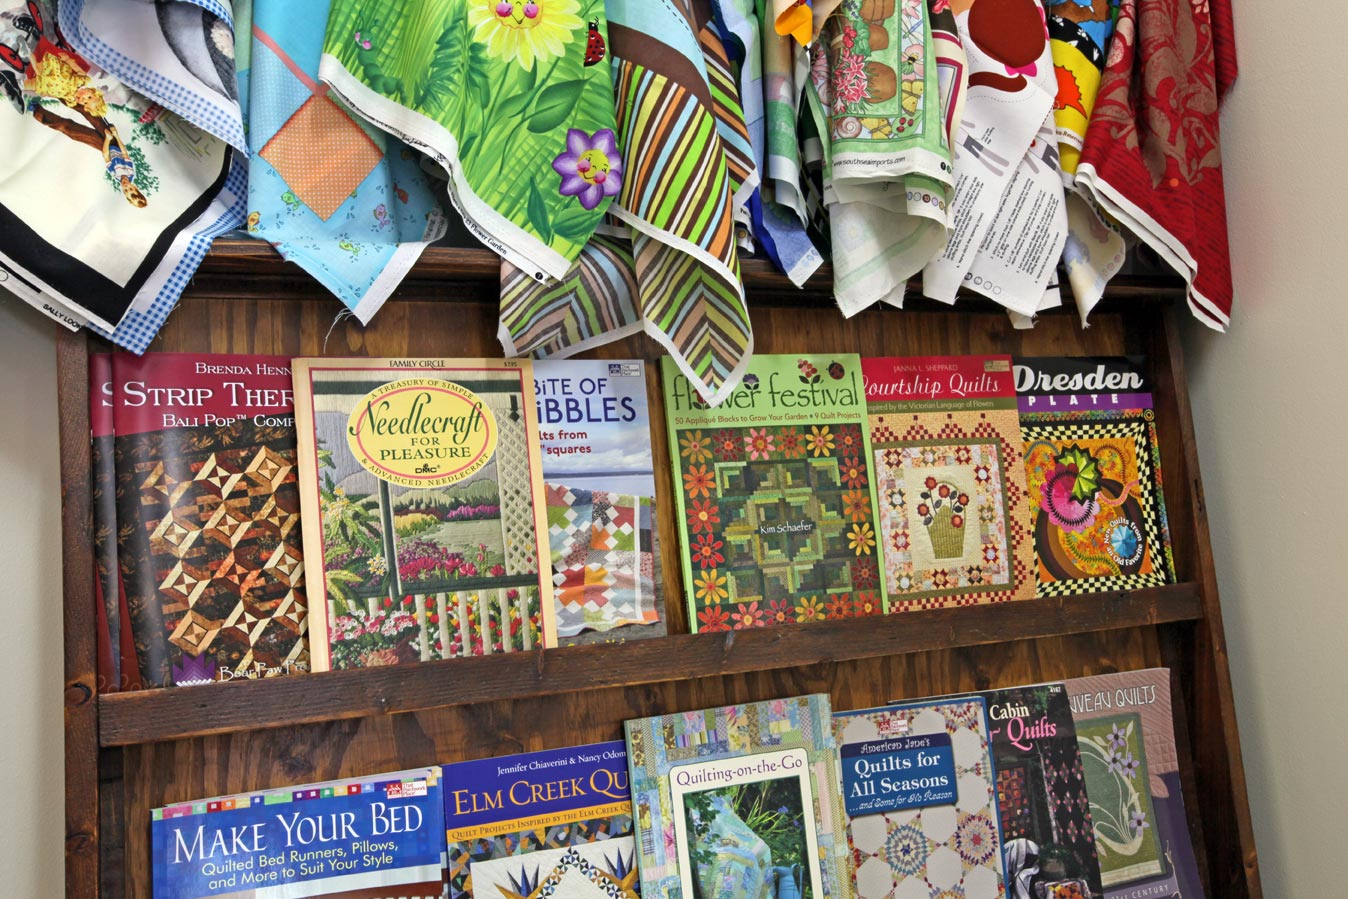 The Quilters' Patch Shop books